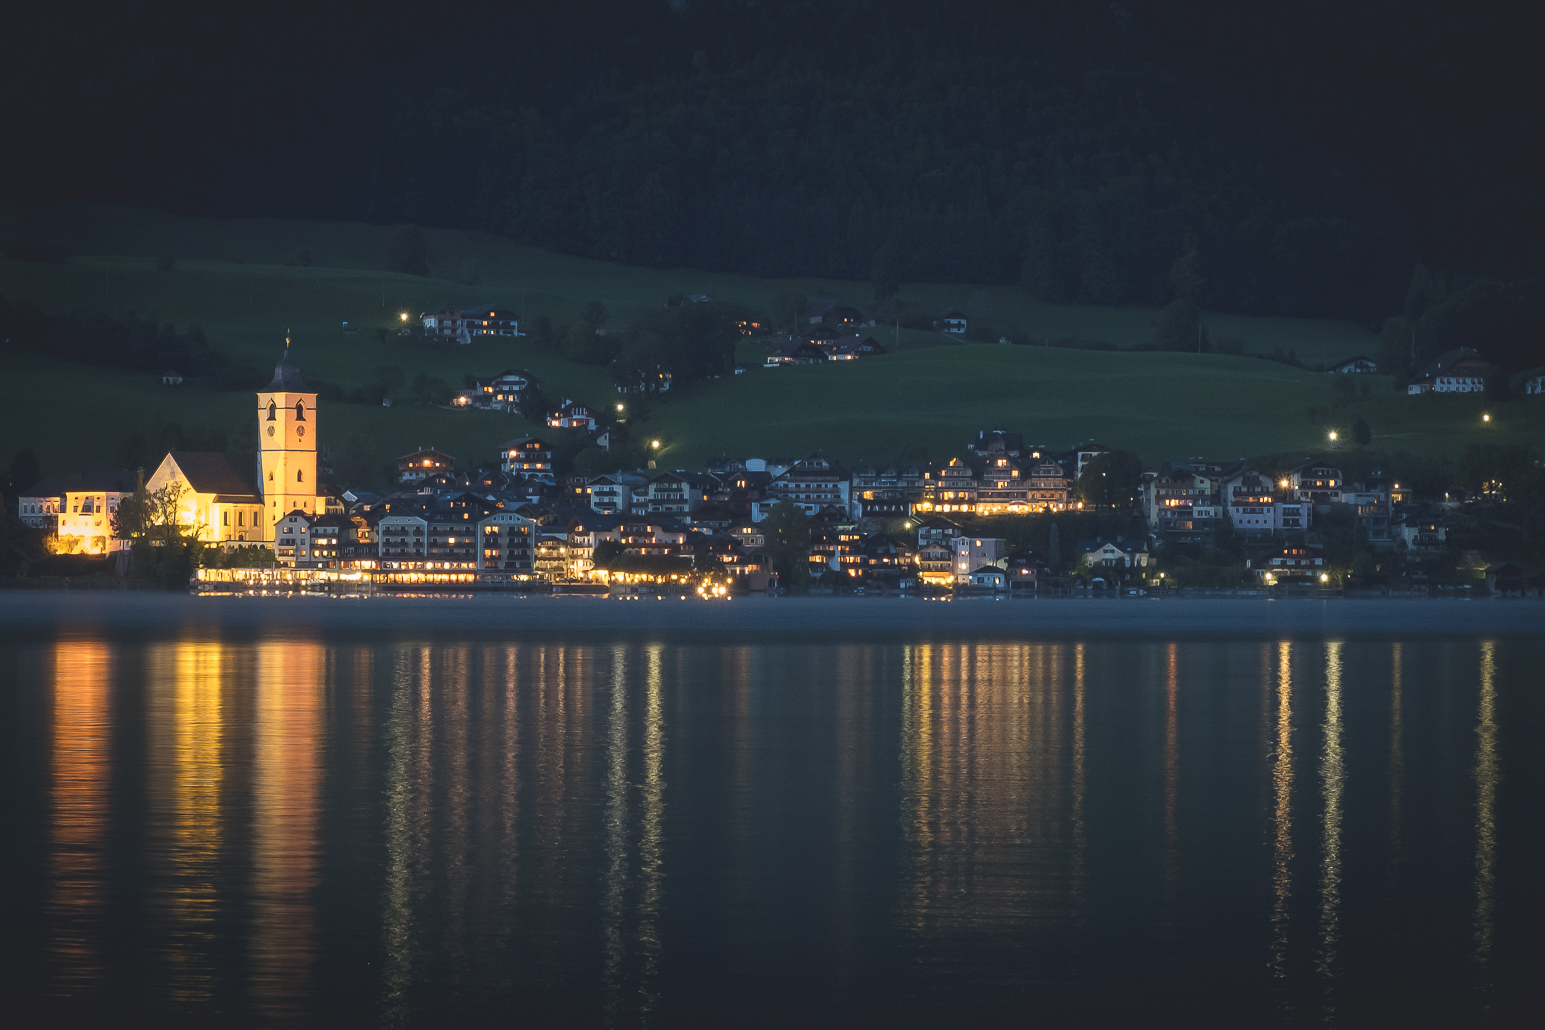 St Wolfgang at night reflecting in the lake from the opposite shore